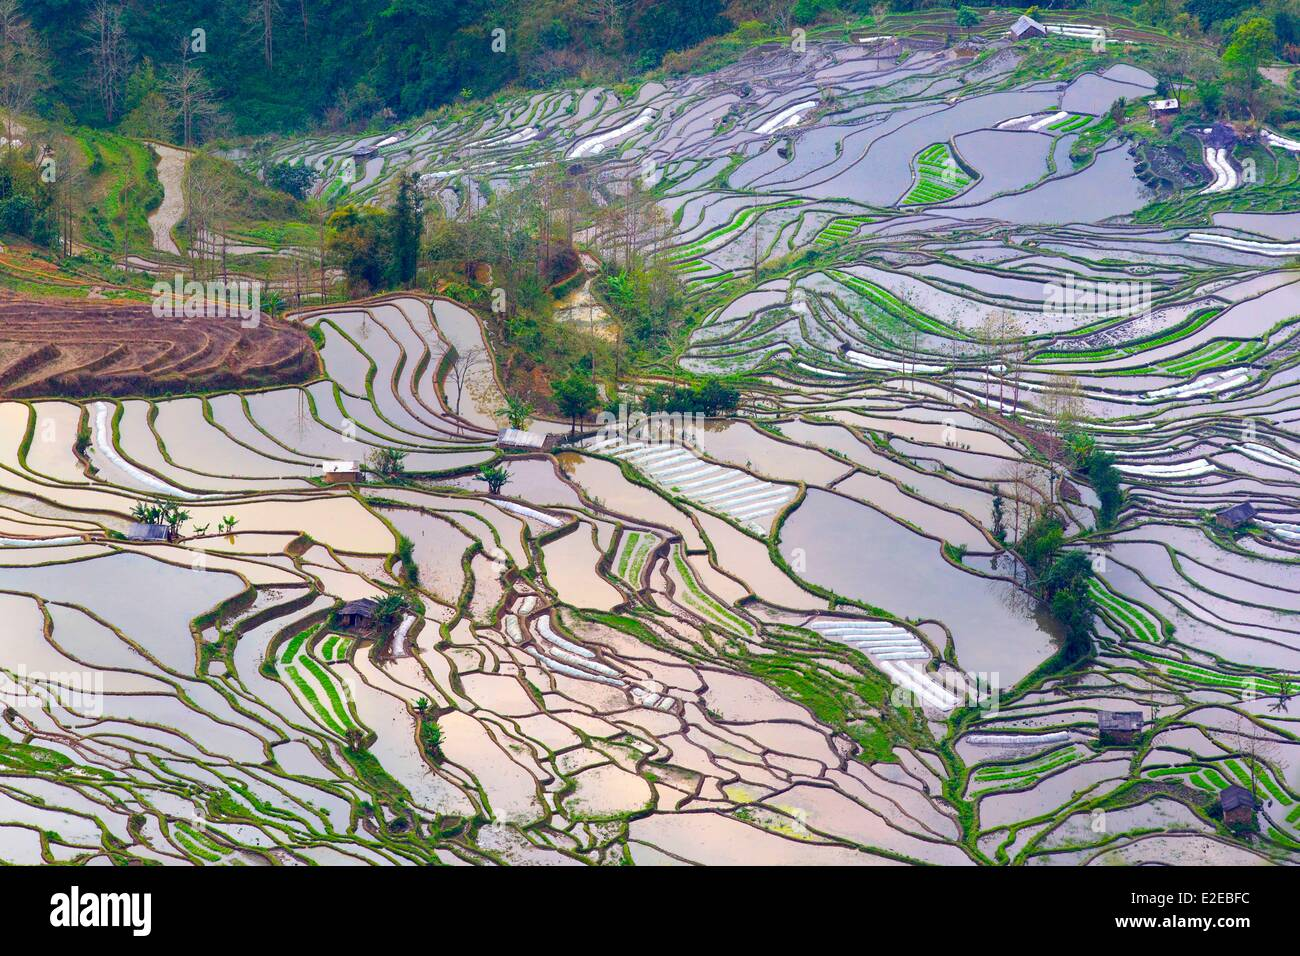 China yunnan province yuanyang cultural landscape of honghe hani china yunnan province yuanyang cultural landscape of honghe hani rice terraces listed as world heritage by unesco sunset at gumiabroncs Image collections